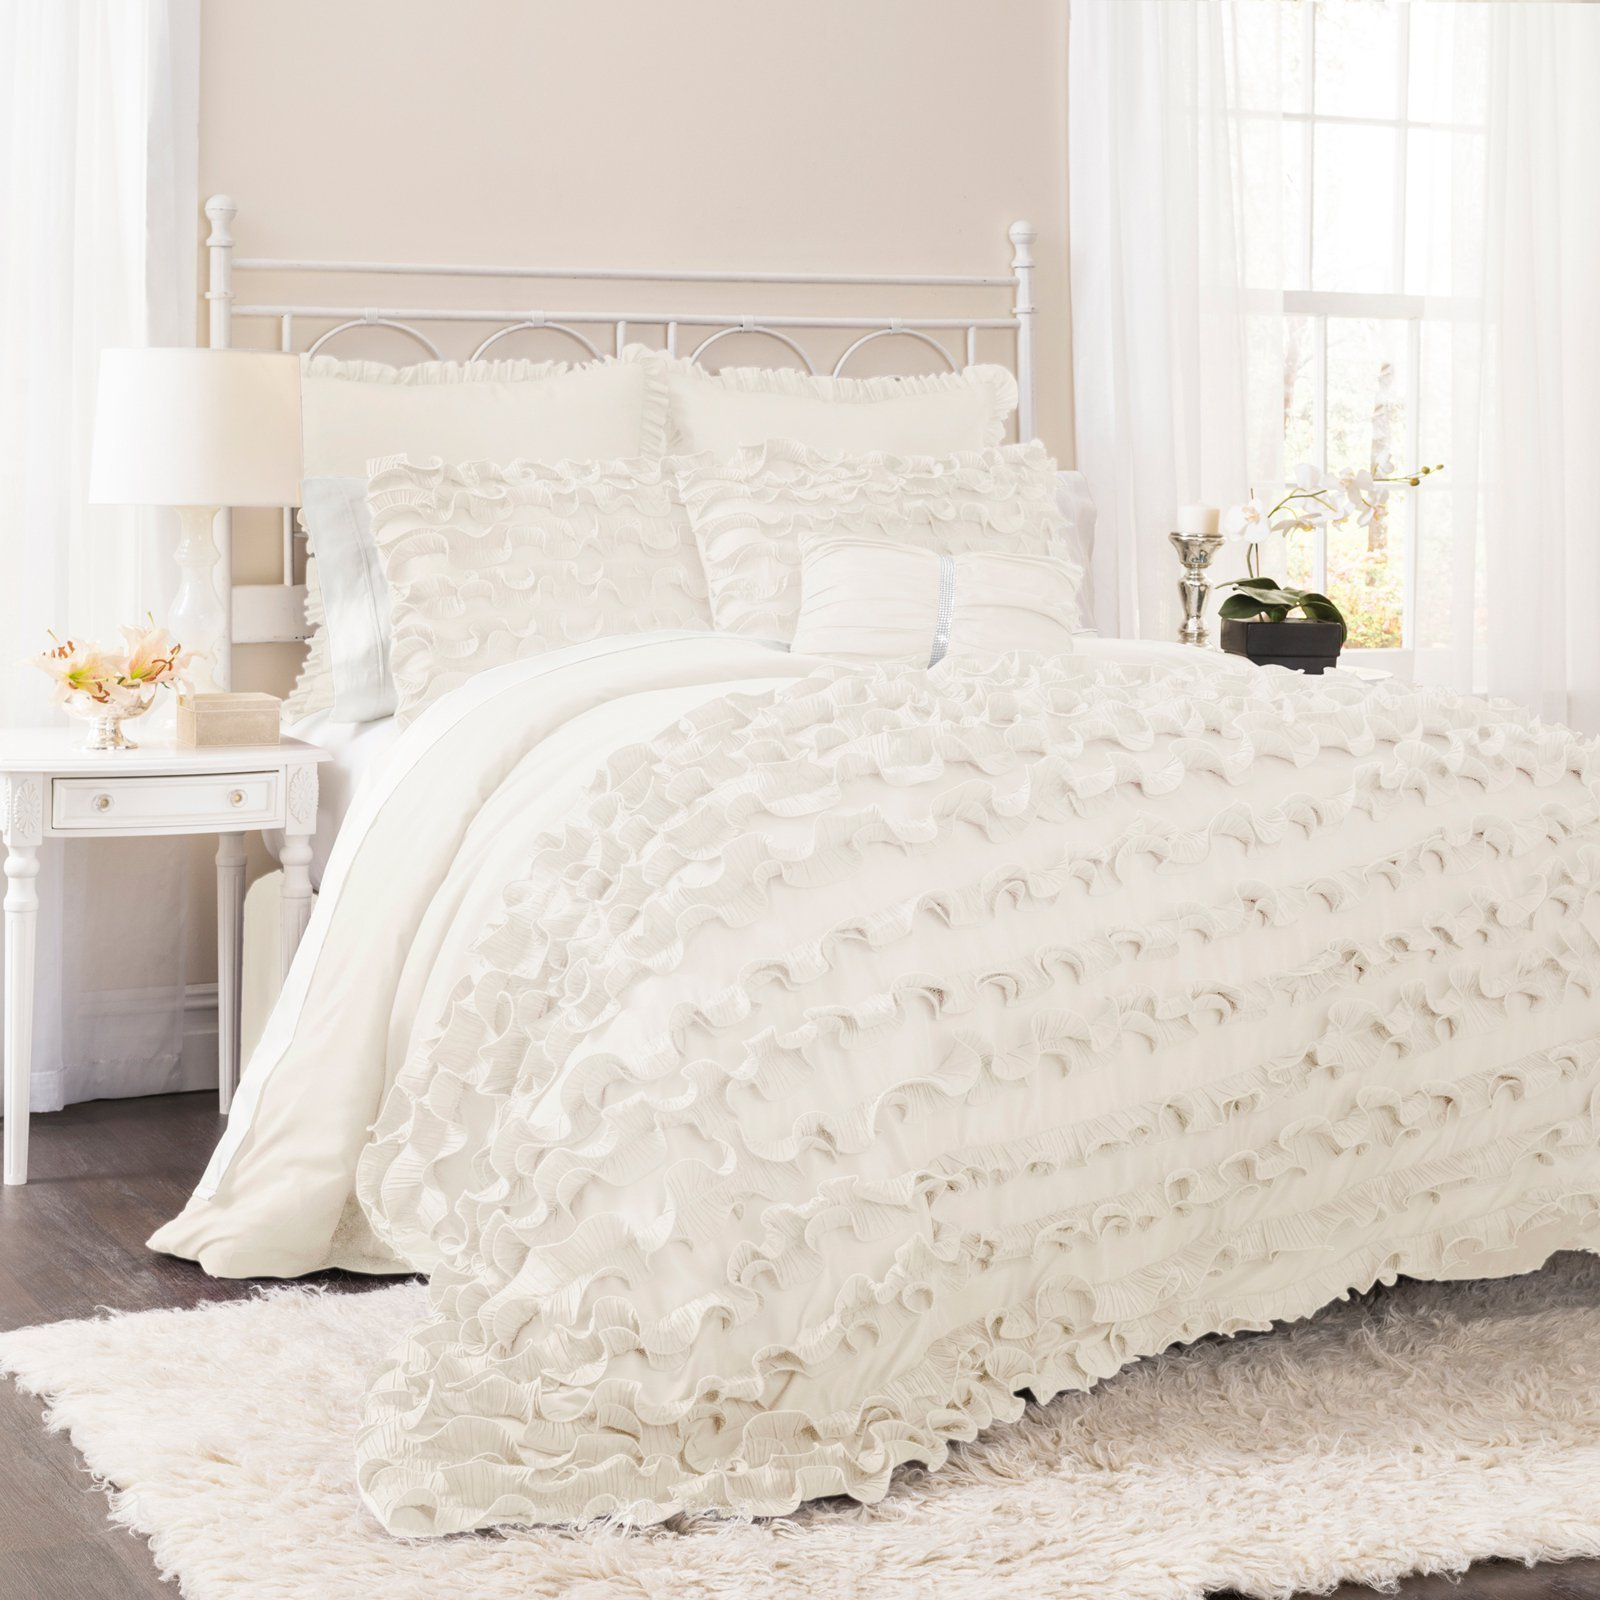 Best Lush Decor Avery 7 Piece Comforter Set Bedding And With Pictures